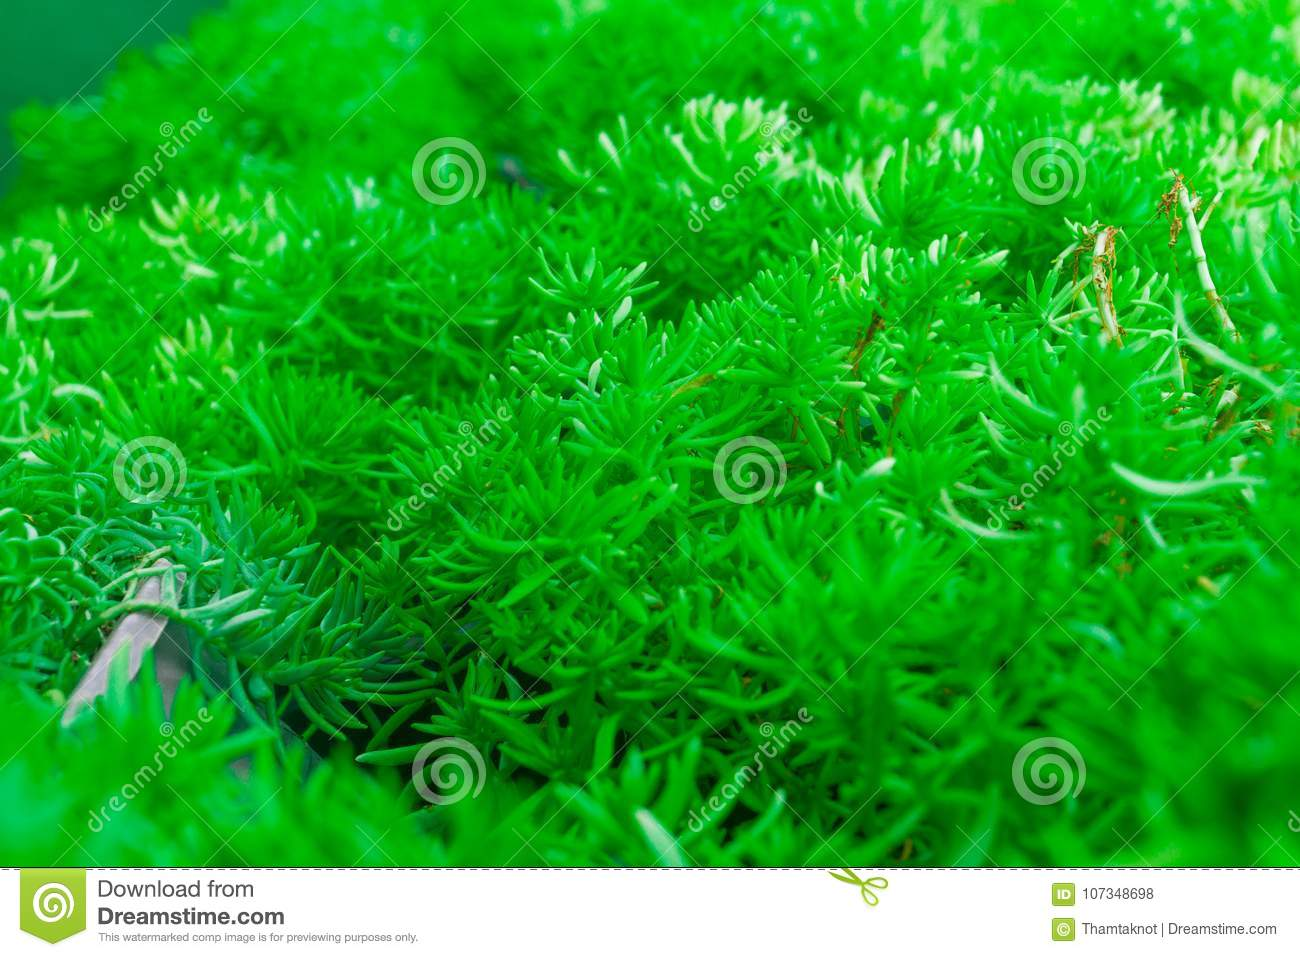 Gold Moss Found Naturally with Wetlands, Which As the Background ...